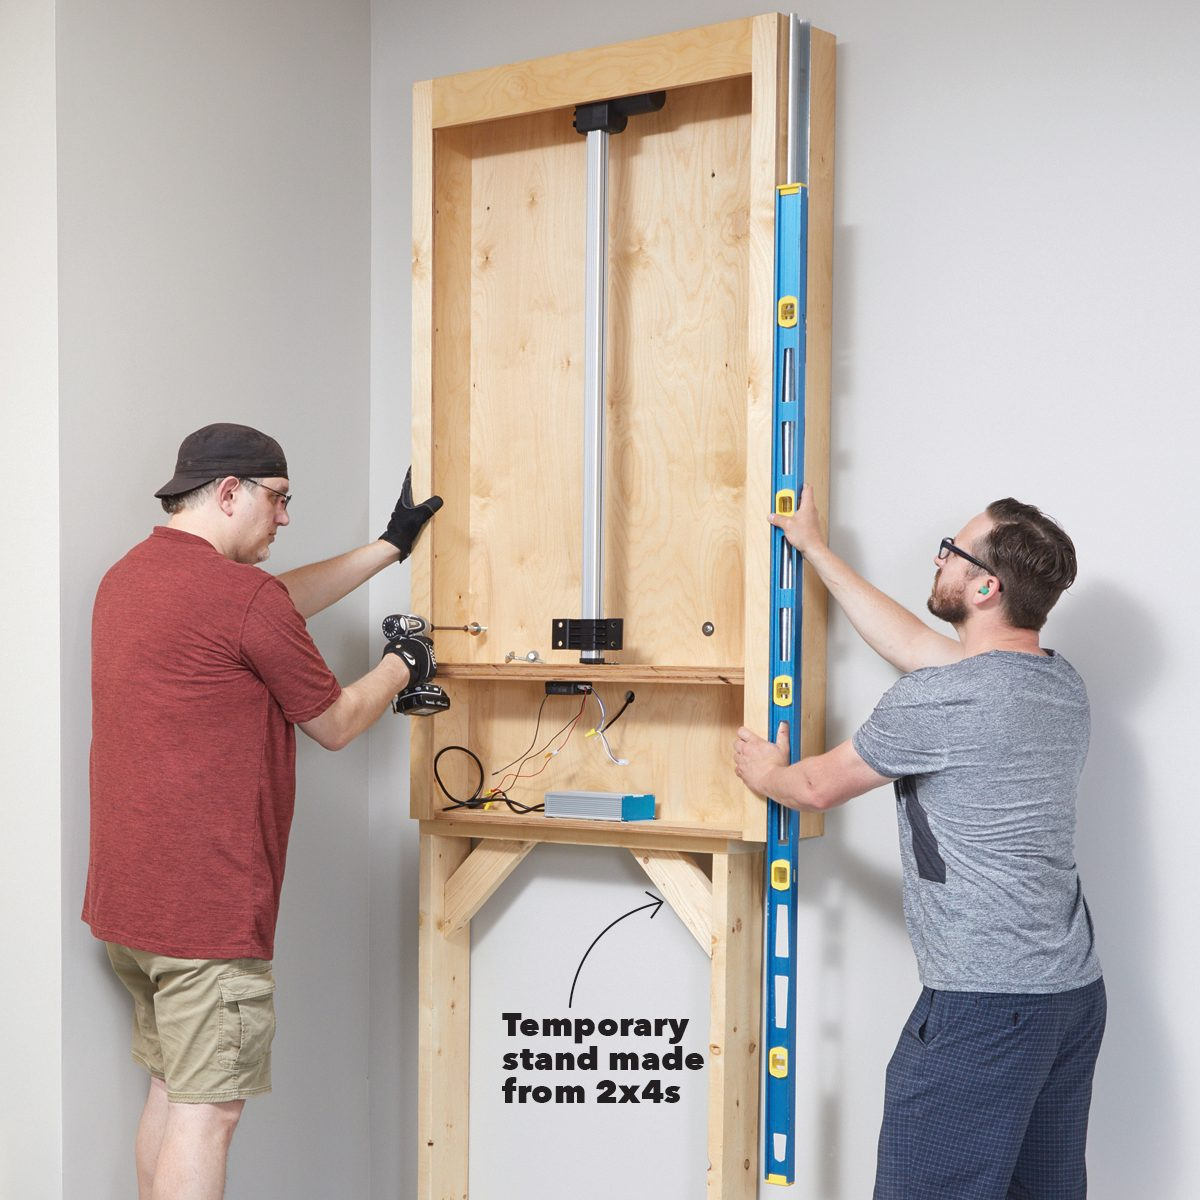 Hanging the cabinet